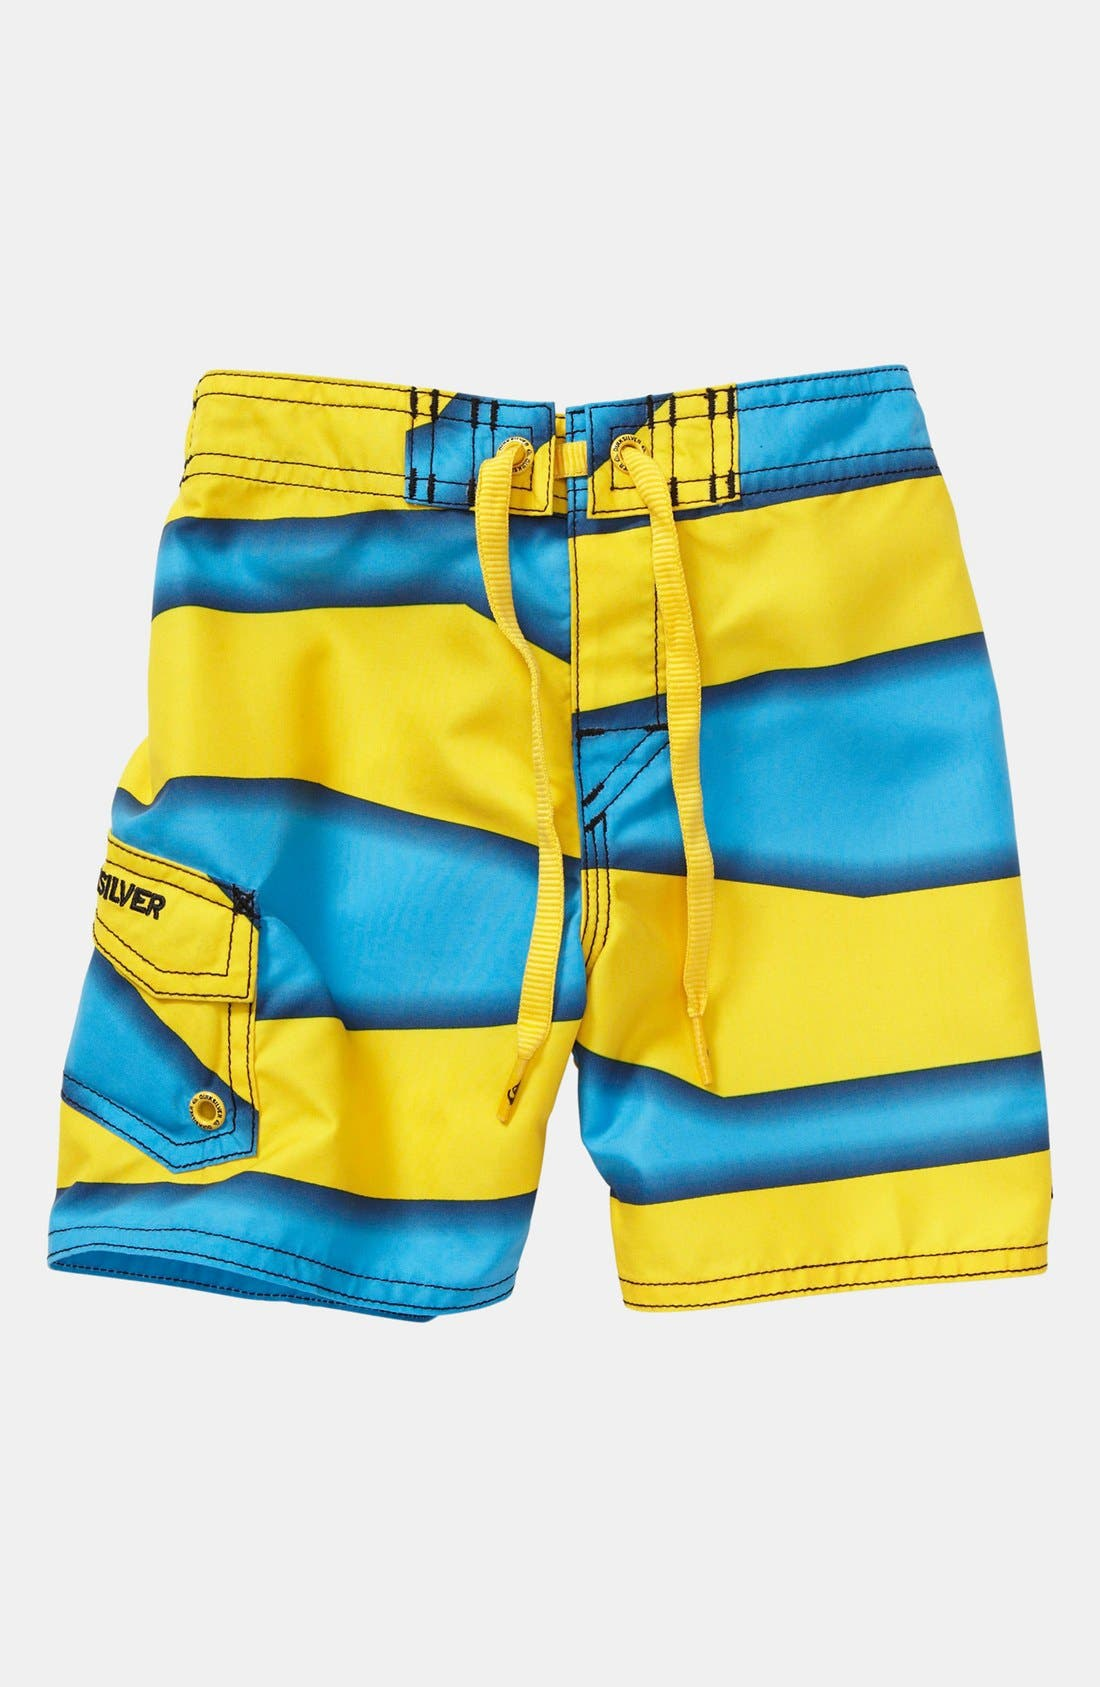 Alternate Image 1 Selected - Quiksilver 'Magic Trick' Board Shorts (Baby Boys)